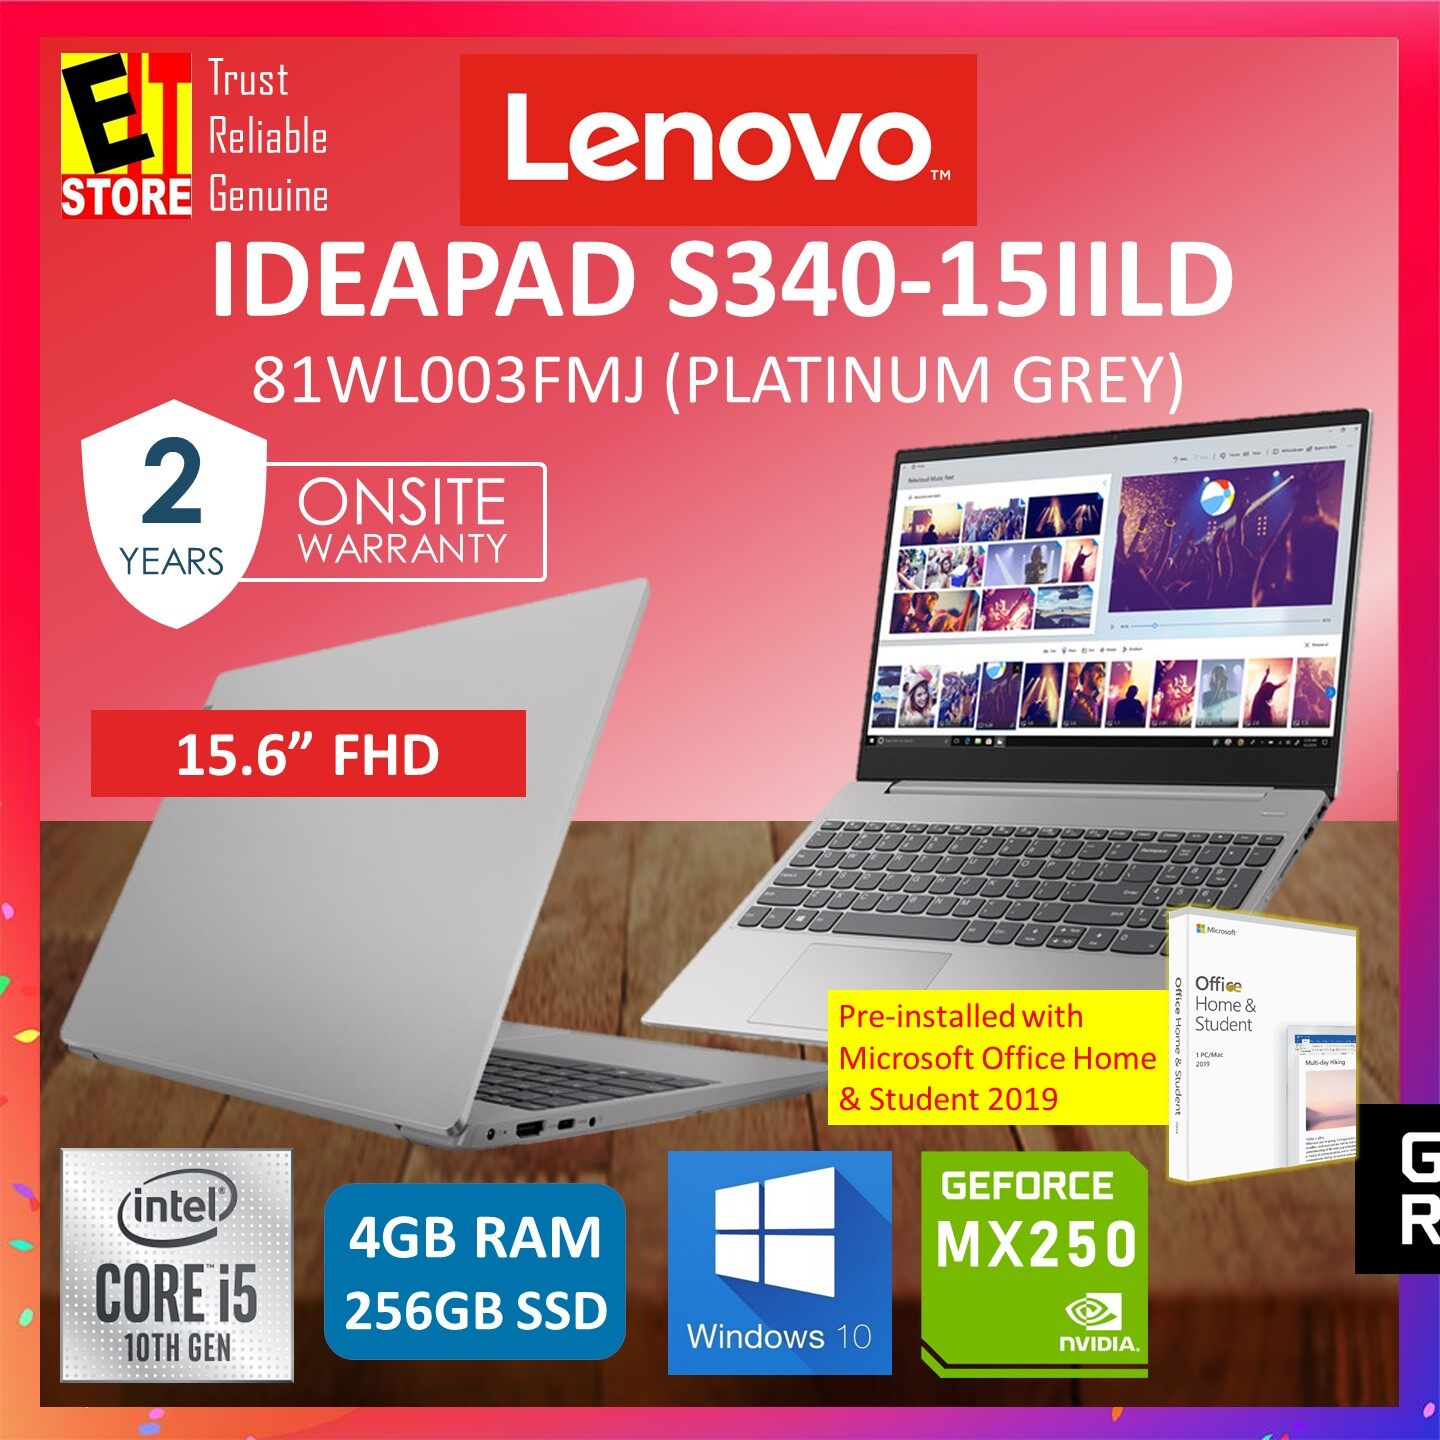 LENOVO IDEAPAD S340-15IILD 81WL003FMJ LAPTOP (GREY) (I5-1035G1/4GB/256GB SSD/15.6 FHD/MX250 2GB/W10/2YRS) WITH MS.OFFICE Malaysia